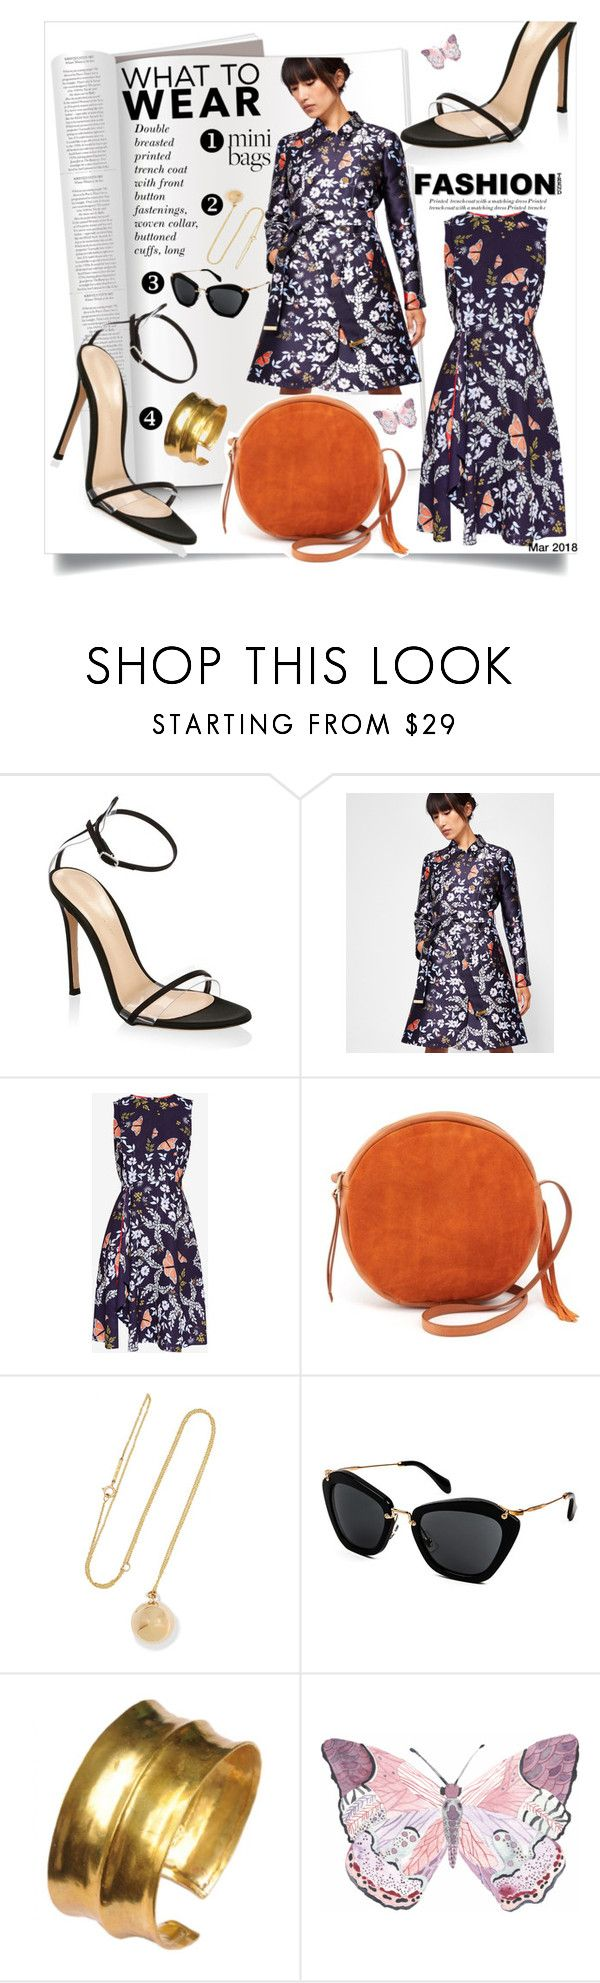 ted baker shoes singapore pools results 4d singapore